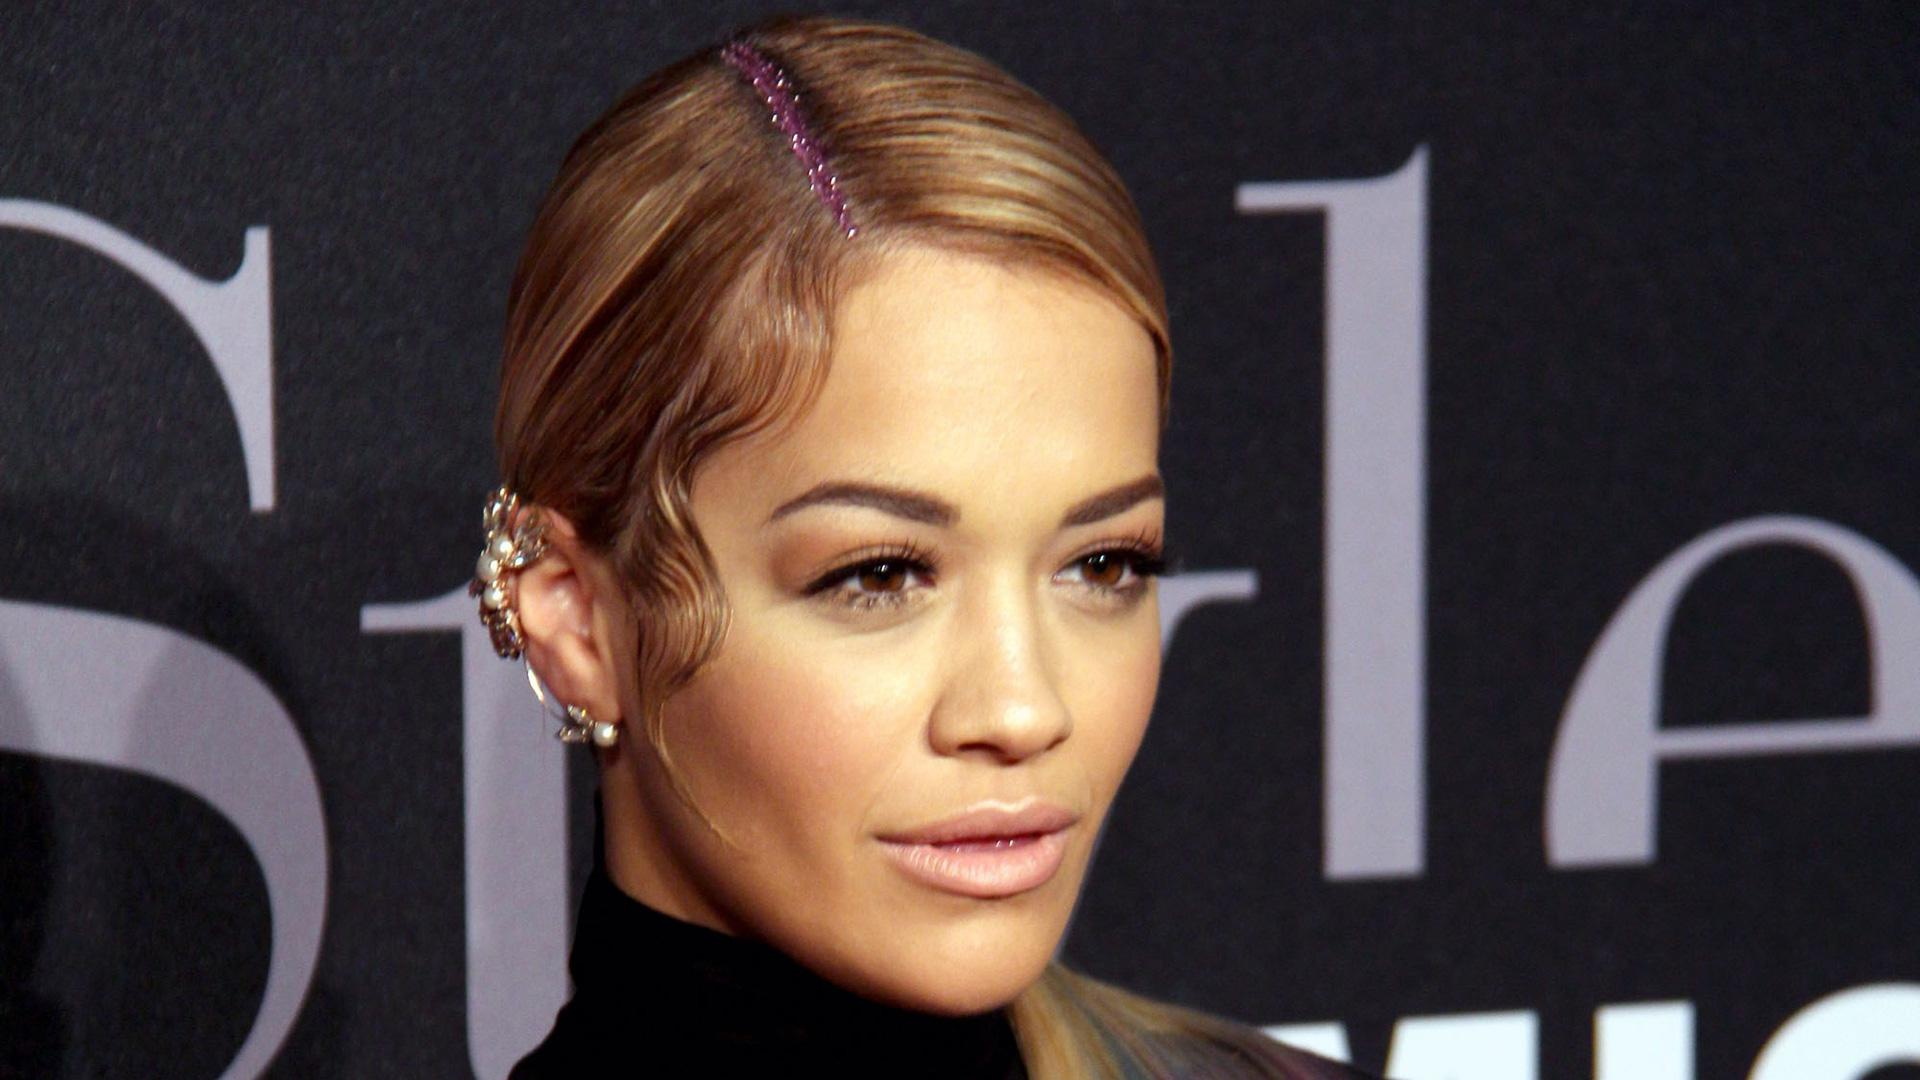 Rita Ora's innovative glitter hairstyle is a nod to the '90s